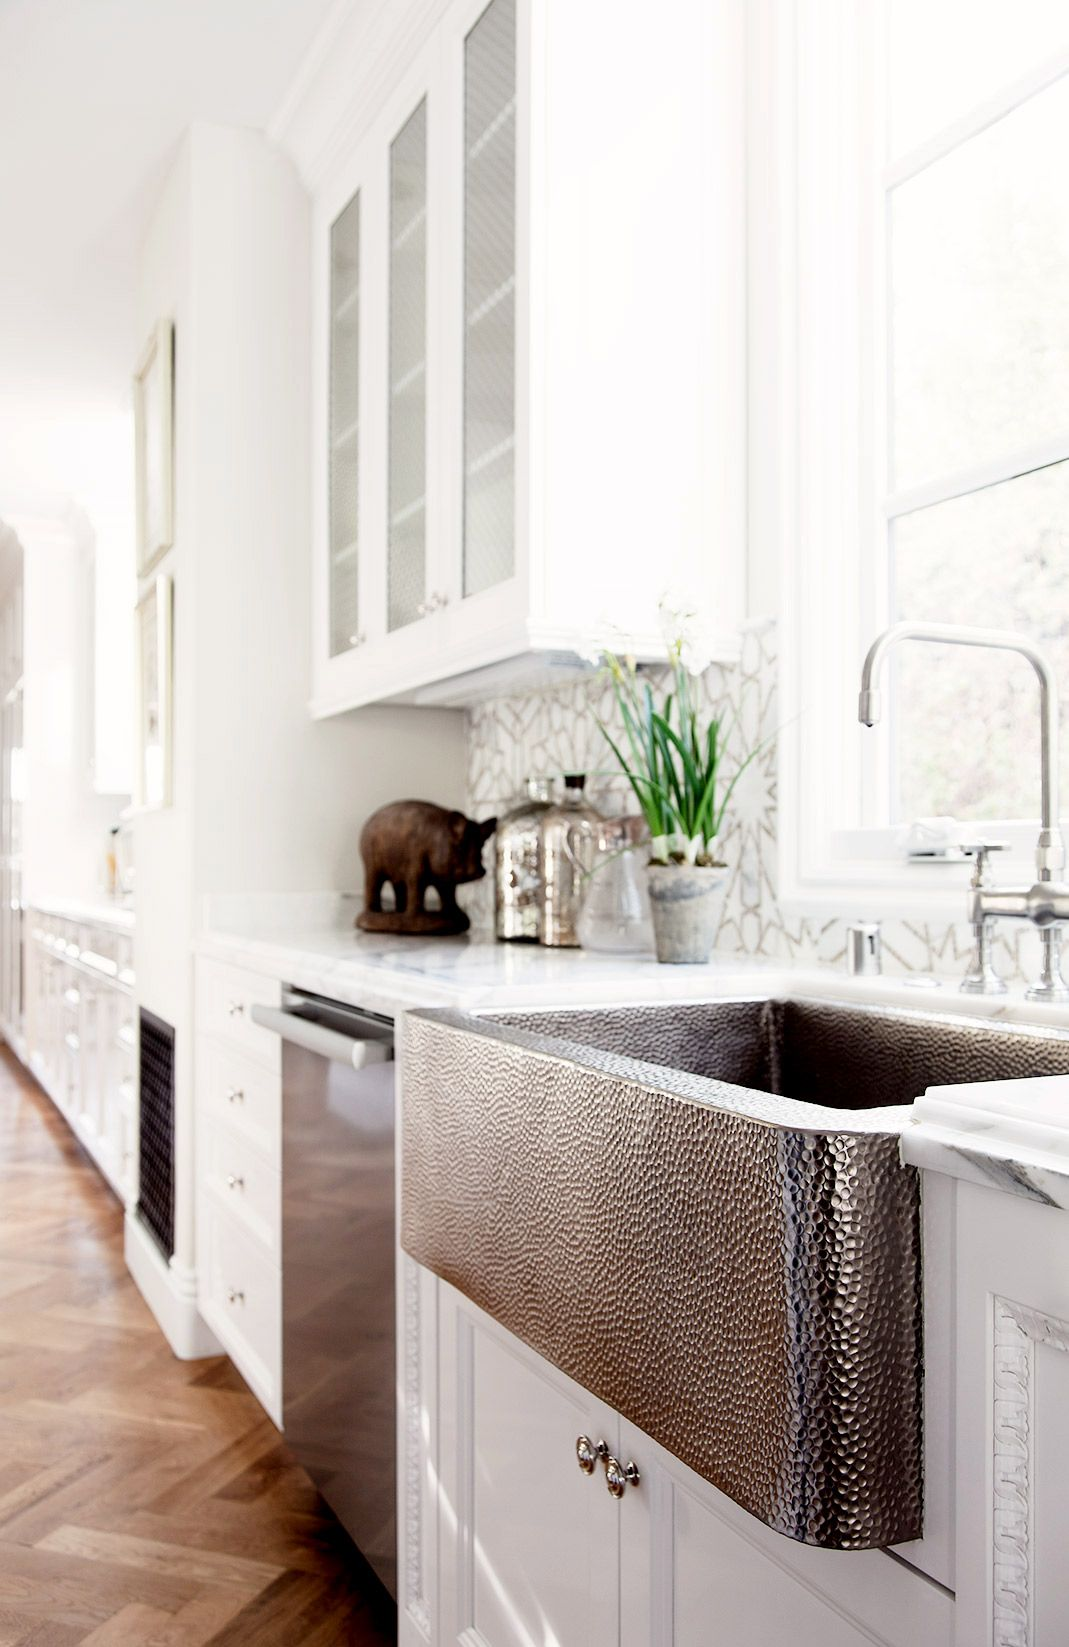 11 of the Most Worthwhile Investments for Your Home | Dishwashers ... for Stainless Steel Farmhouse Sink White Kitchen  45gtk